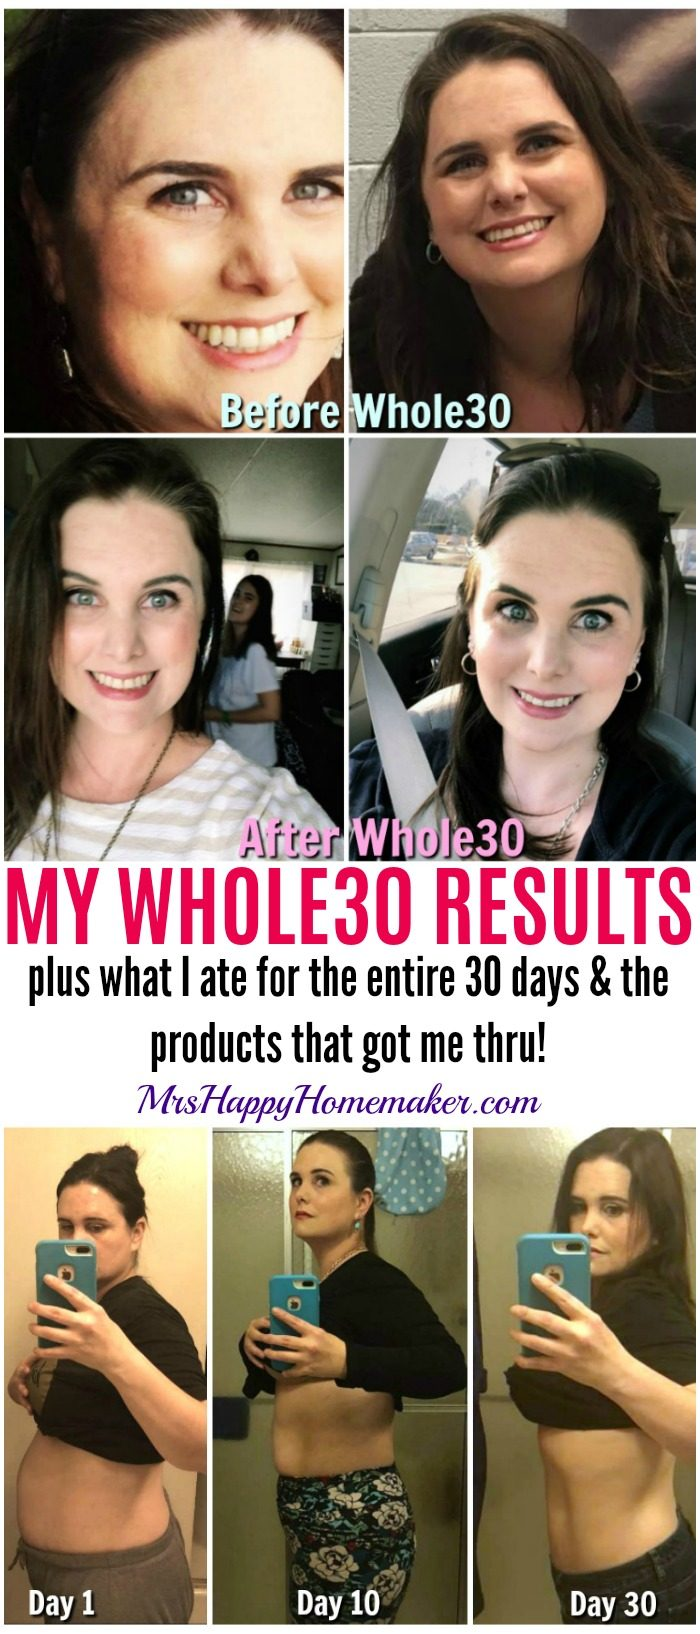 My Whole30 Results - before & after photos too, plus what I ate for the entire 30 days